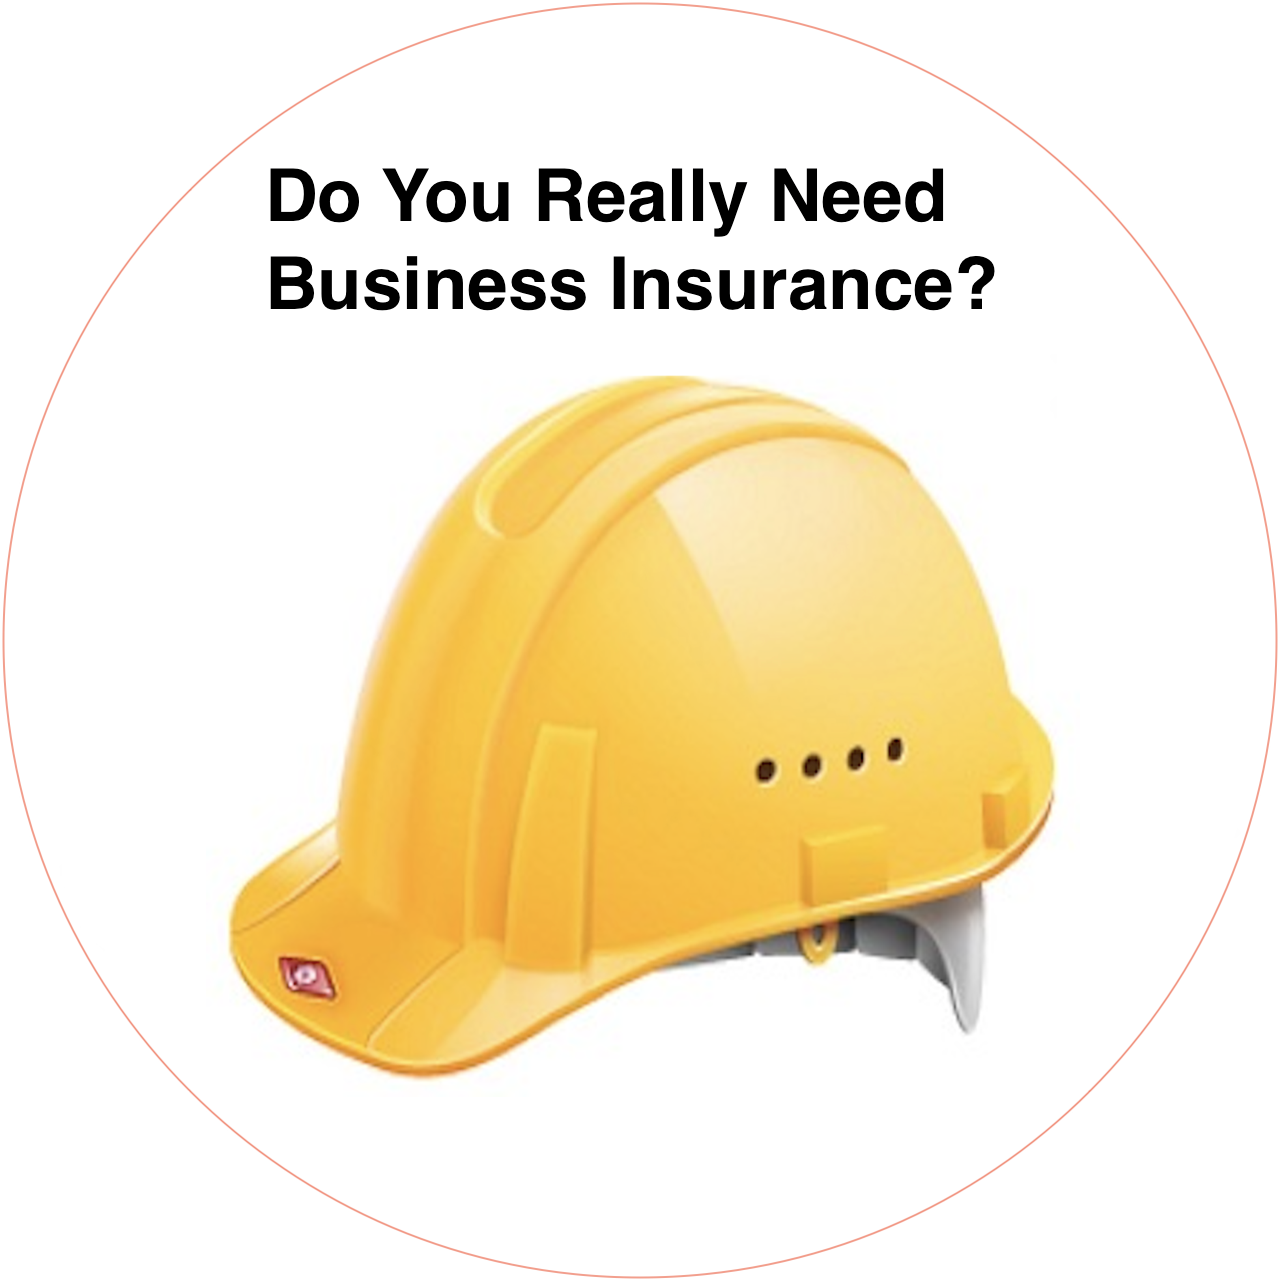 Contractor Insurance Business Insurance Commercial Insurance